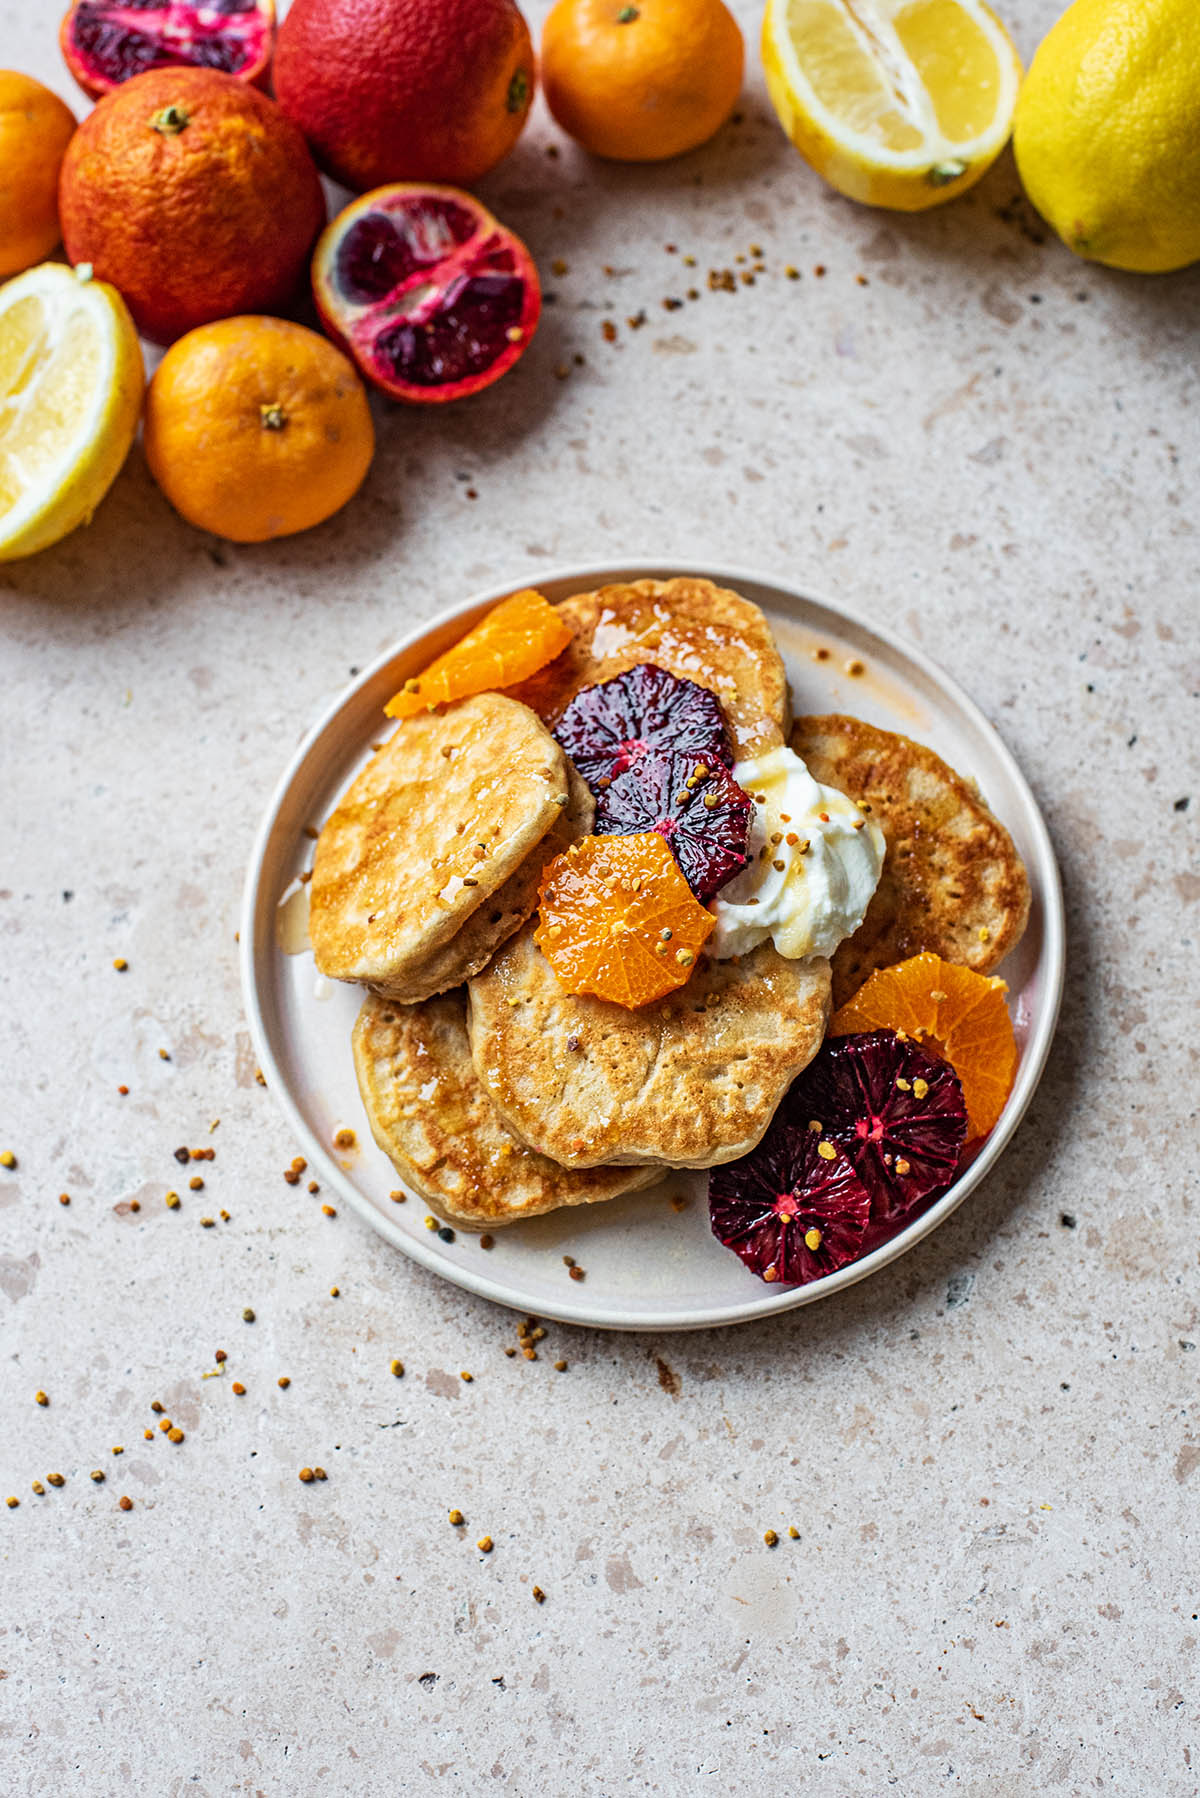 A plate of pancakes with yogurt and orange slices.